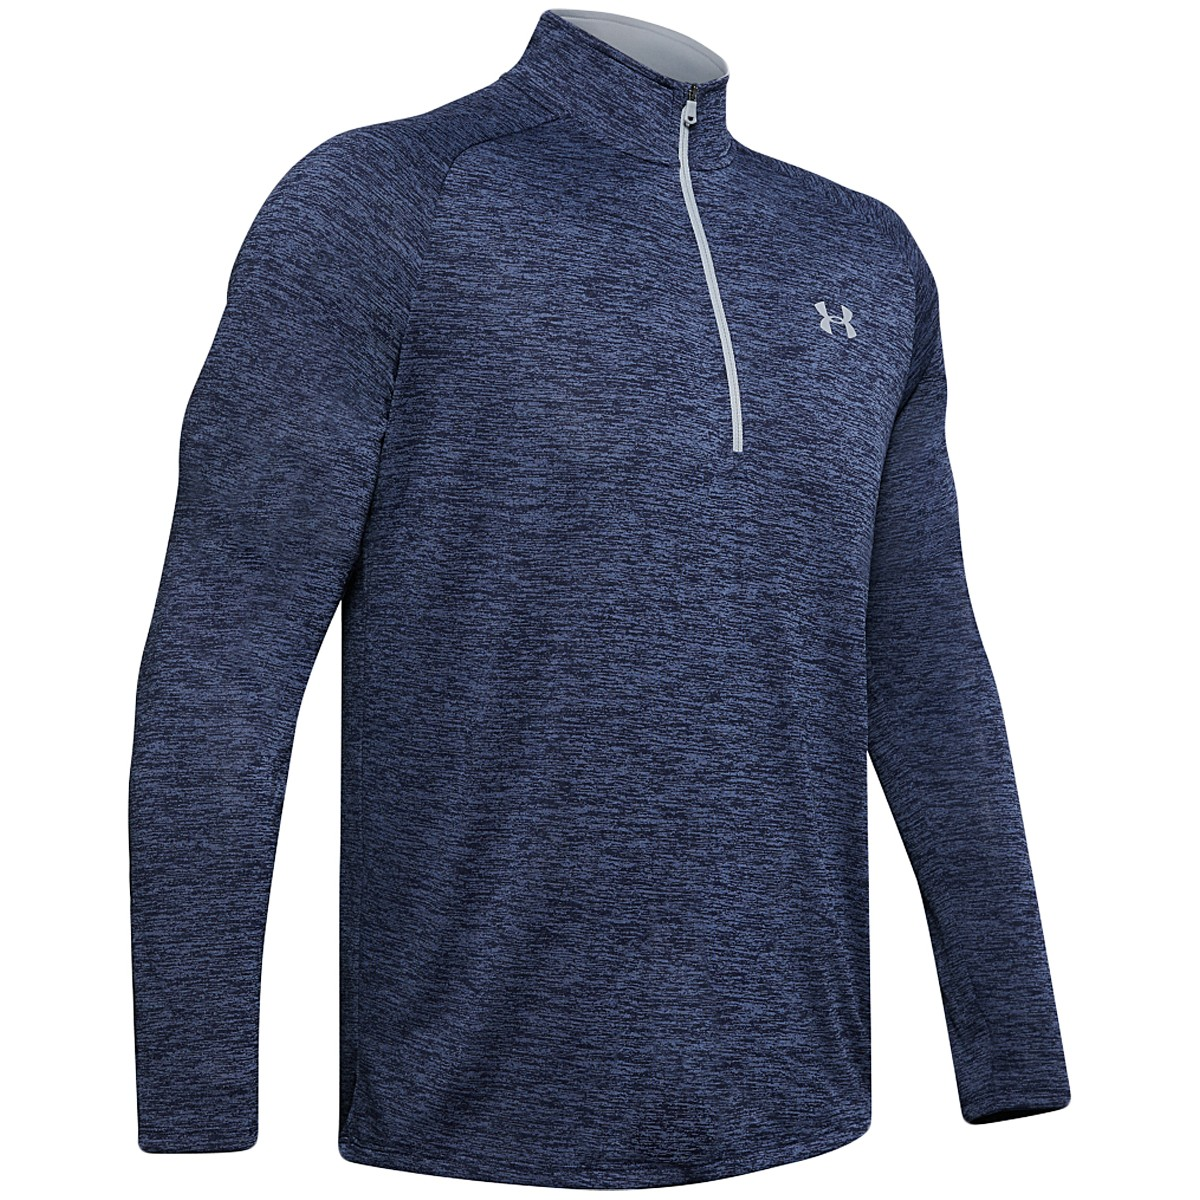 T-SHIRT UNDER ARMOUR MANCHES LONGUES TECH 2.0 1/2 ZIP